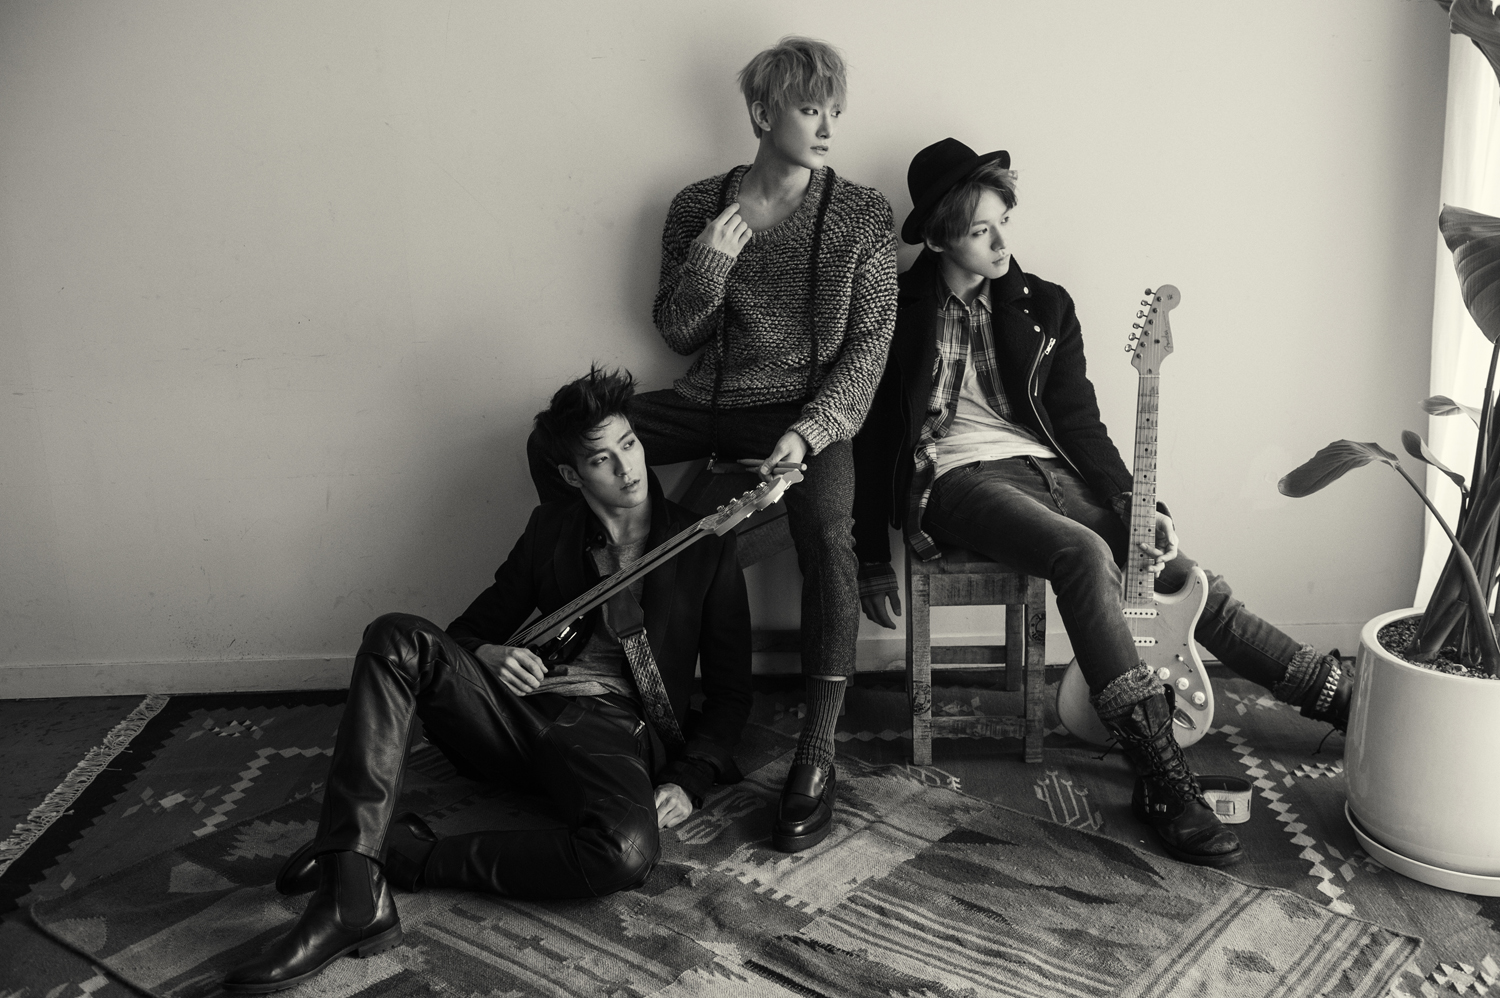 James (far left, sitting on the floor) with his former Royal Pirates bandmates Moon (far right) and Sooyoon (middle).